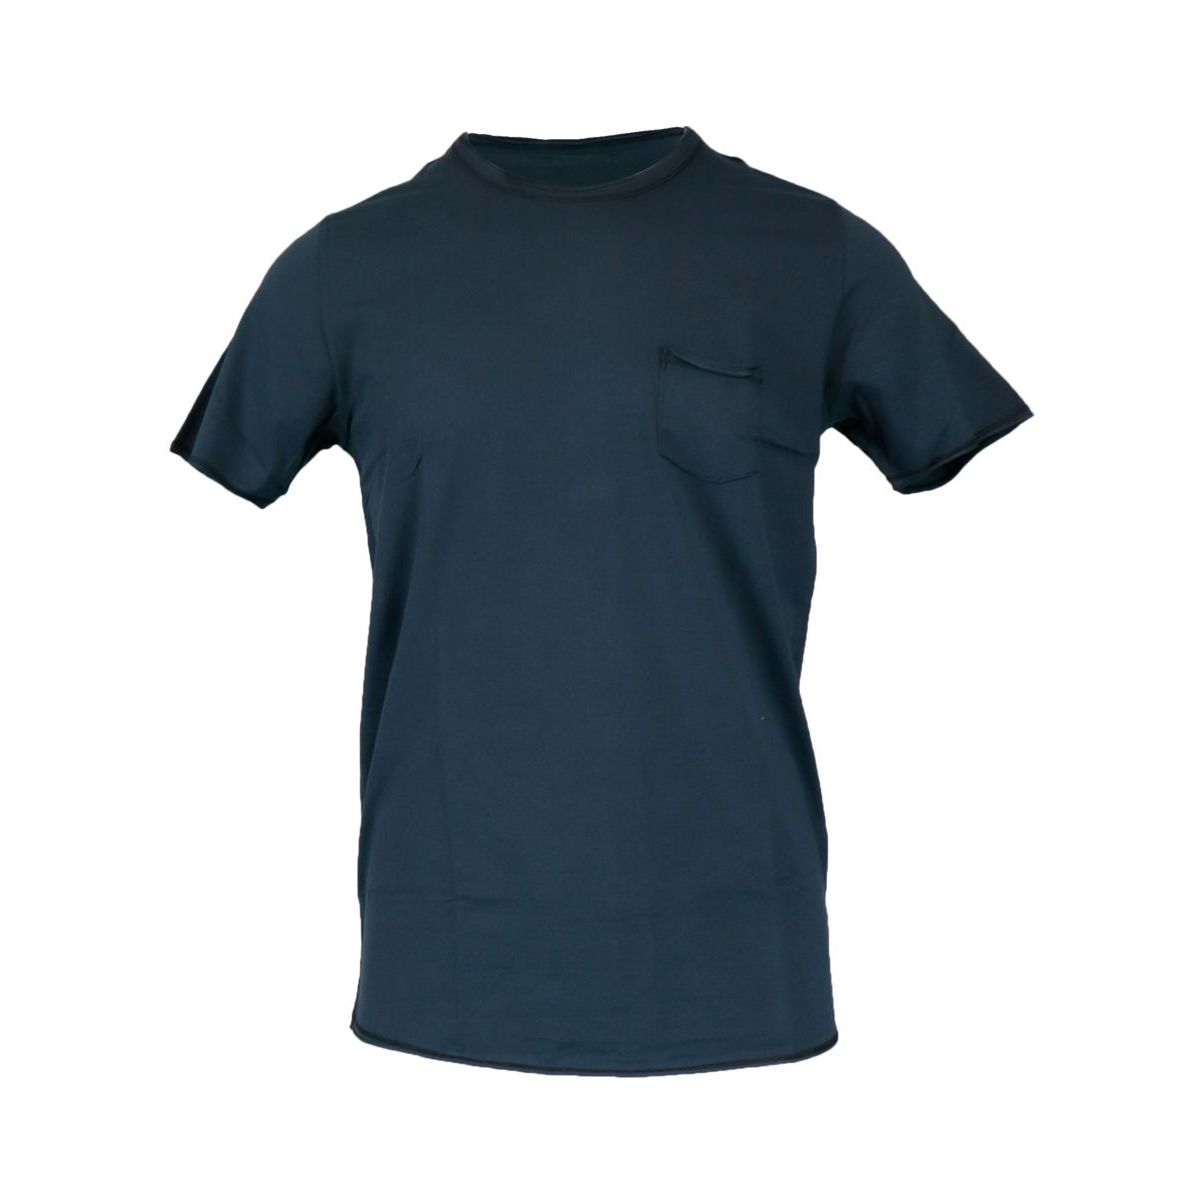 Crew-neck t-shirt in vintage effect cotton and lycra Navy Gran Sasso